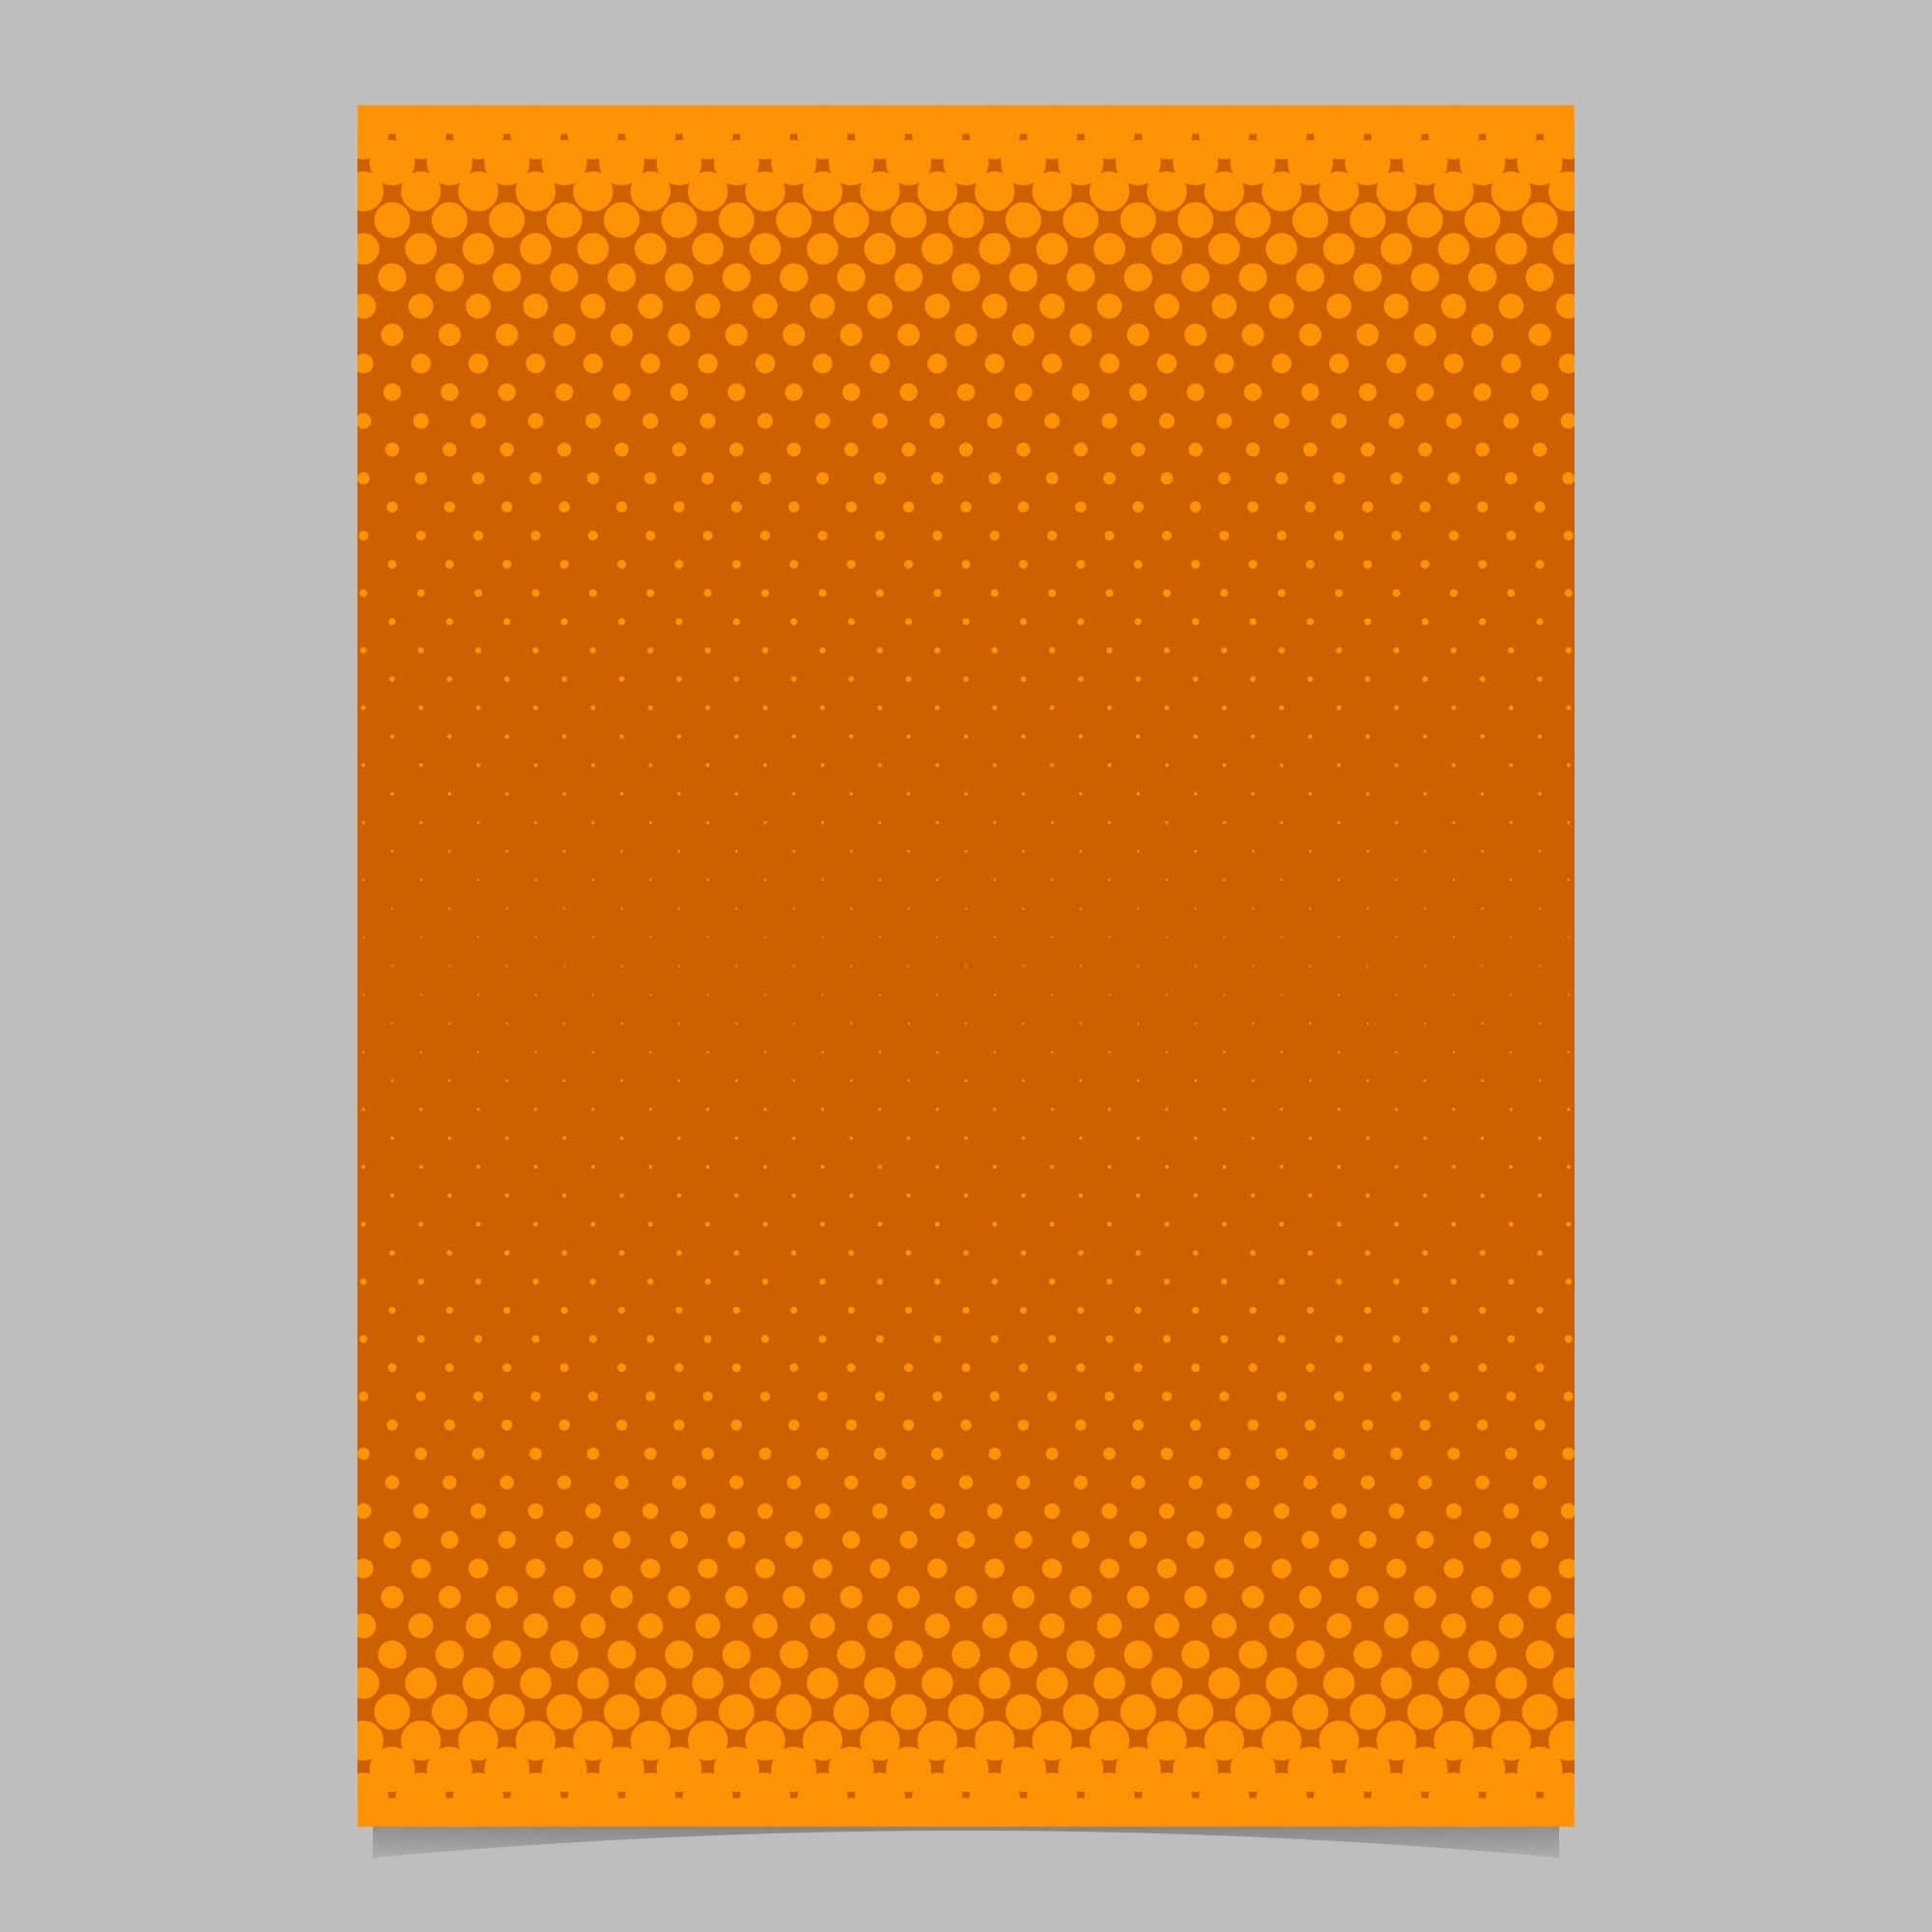 Orange abstract halftone dot pattern brochure template - vector flyer background illustration with colored circles